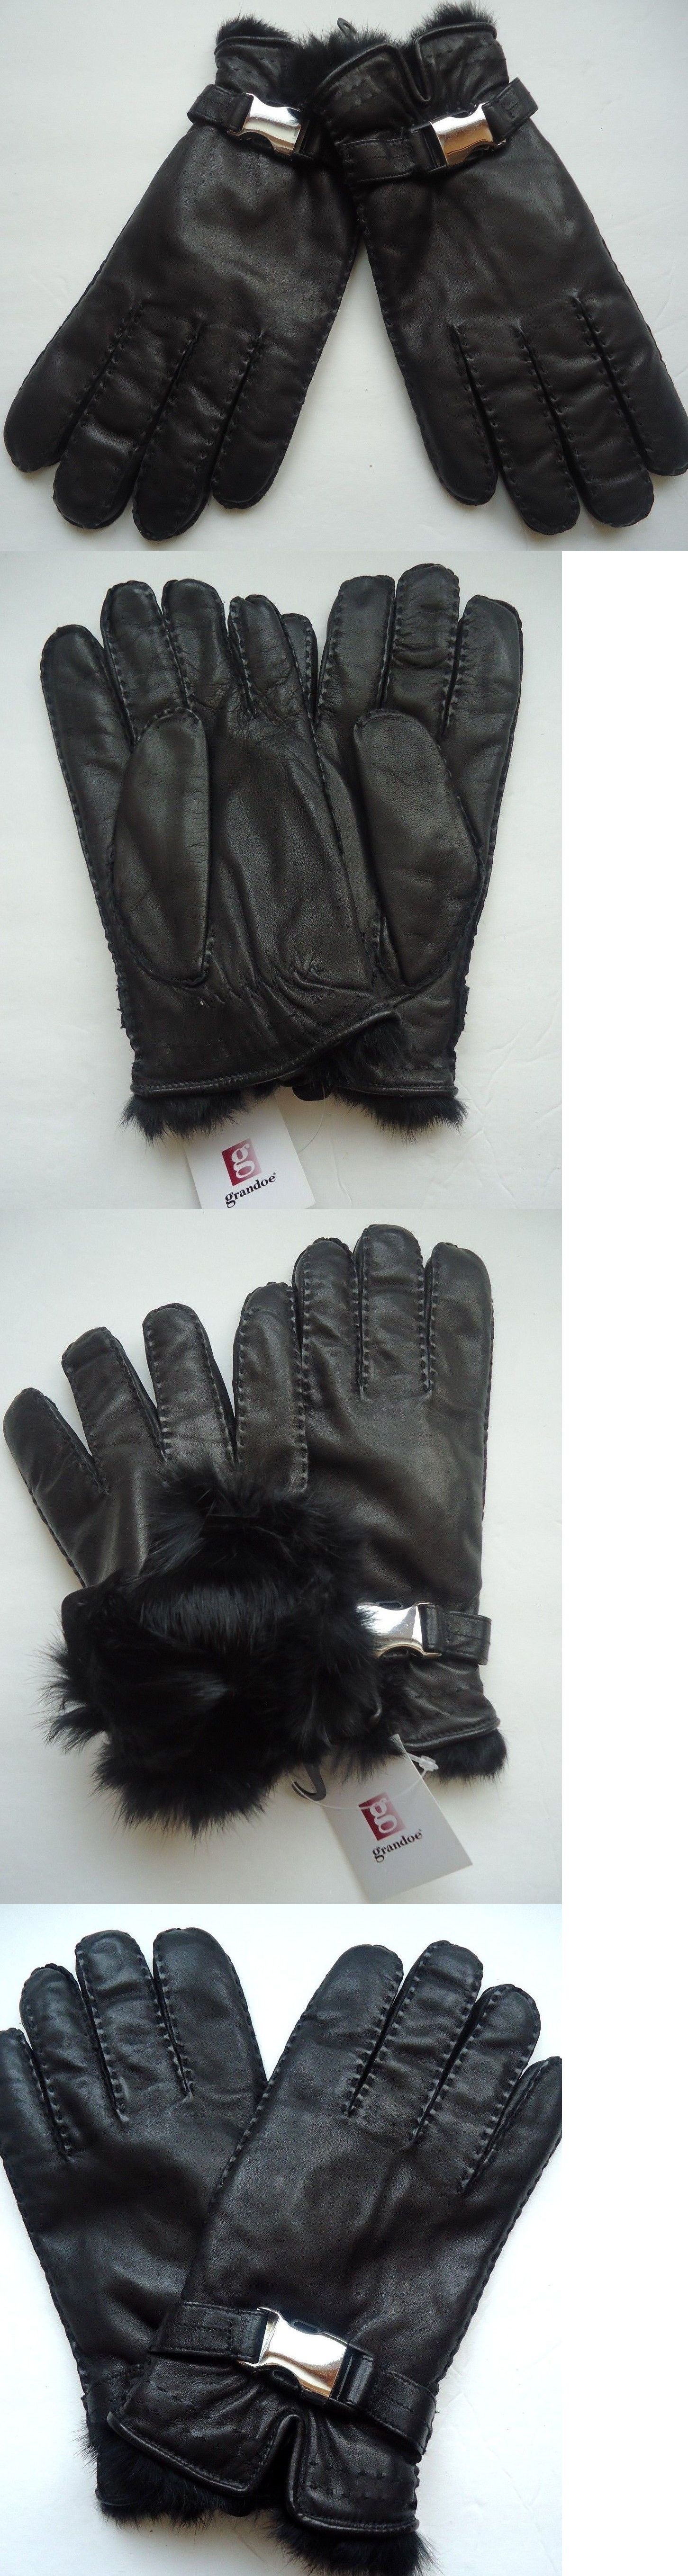 Mens leather gloves xl - Gloves And Mittens 2994 Men S Grandoe 100 Rabbit Fur Fully Lined Genuine Leather